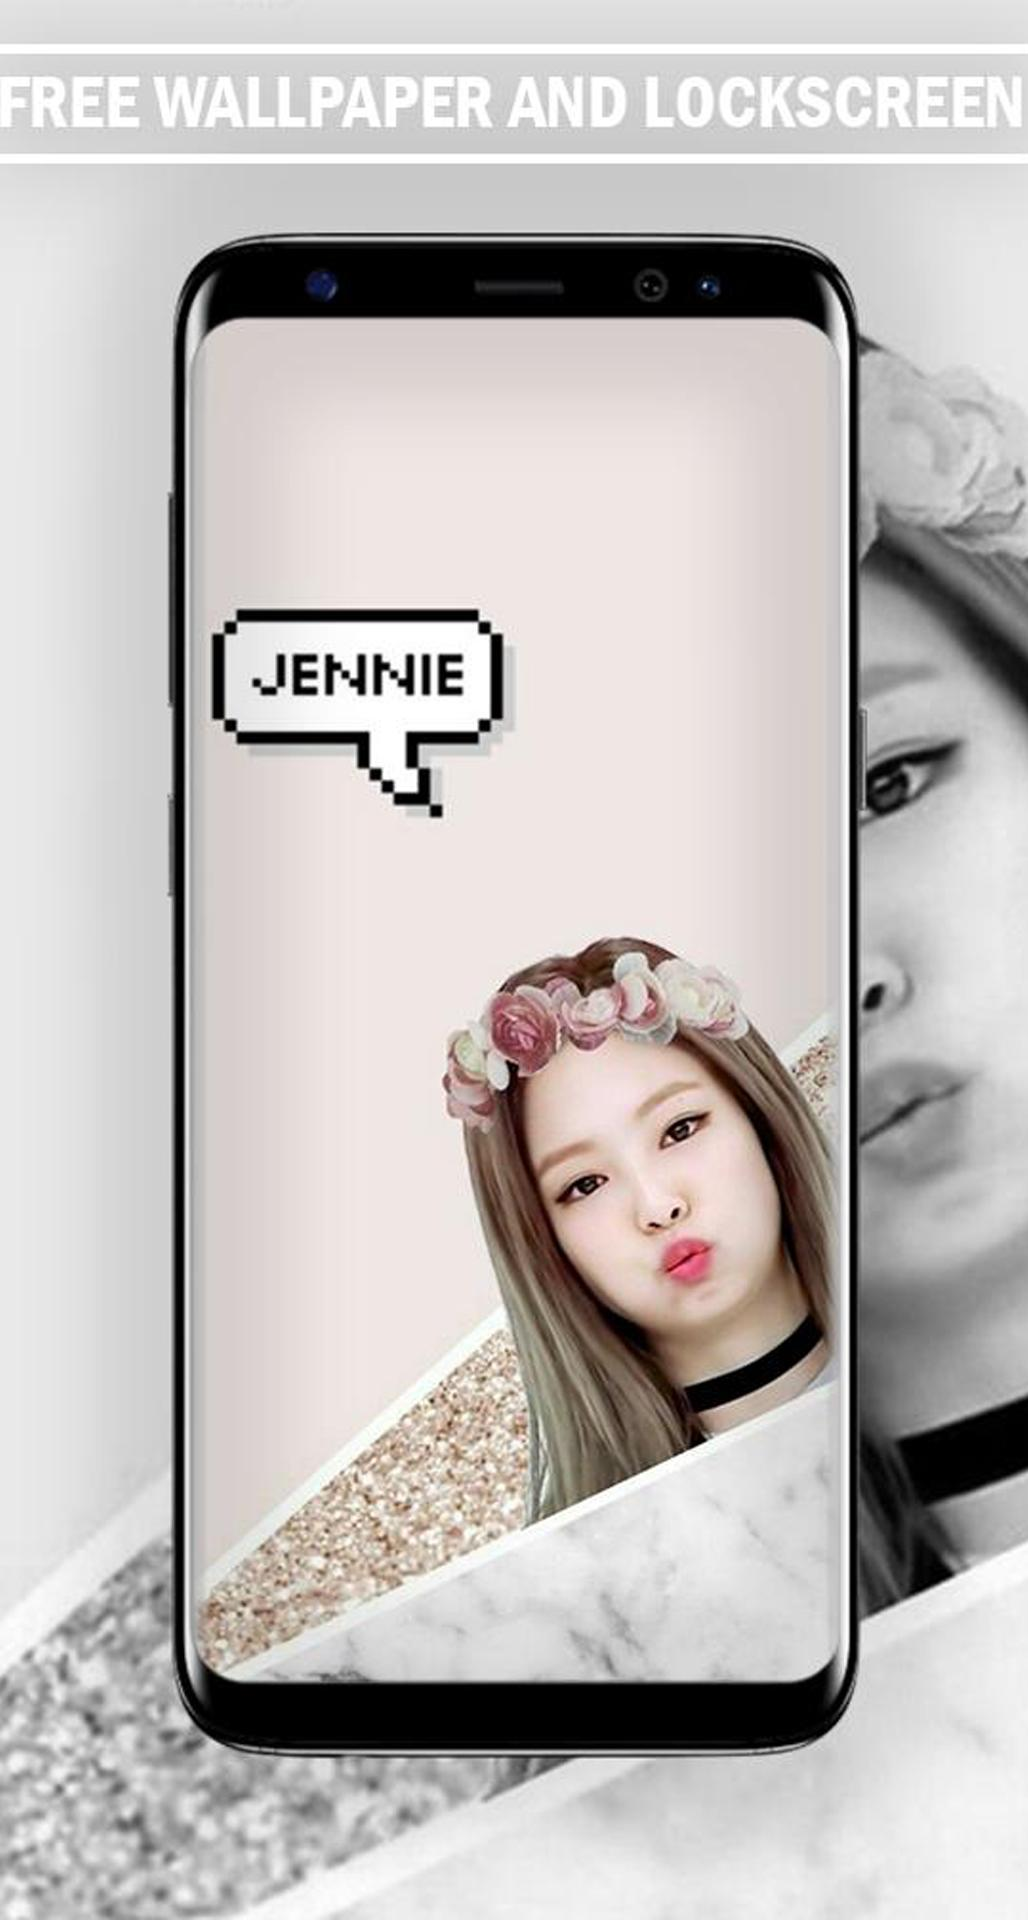 BlackPink Wallpaper HD 2020 for Android - APK Download